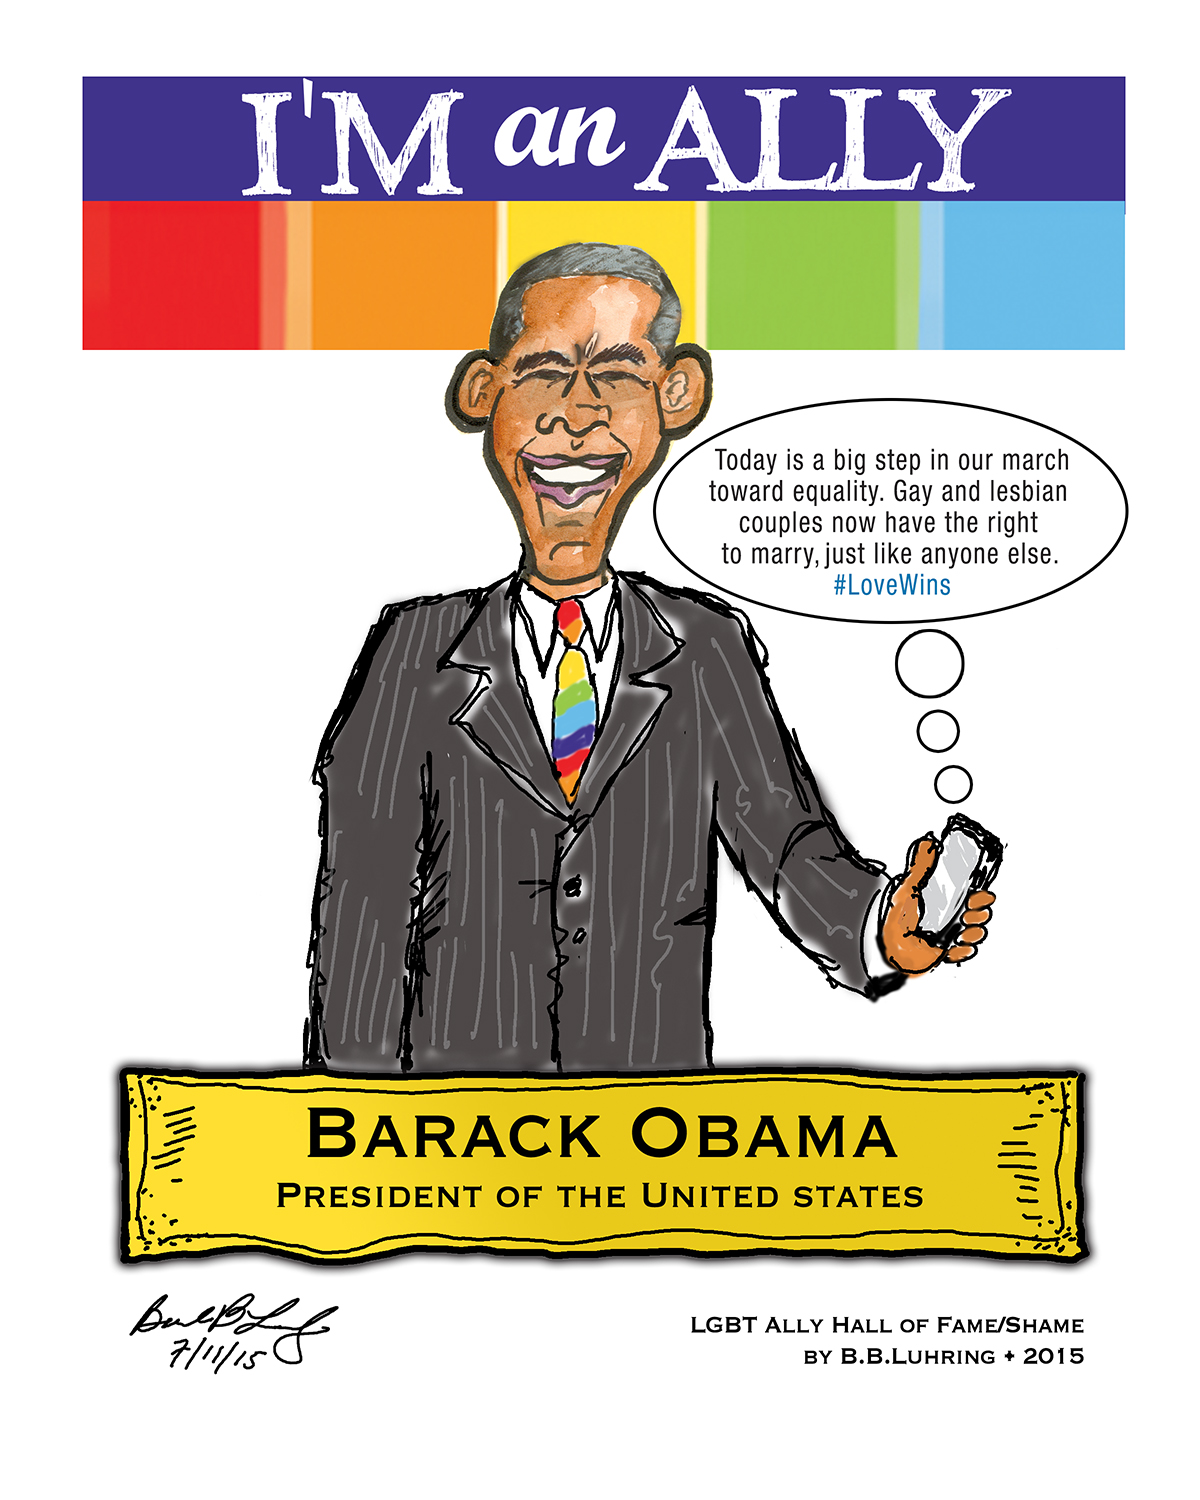 President Barack Obama Tweeted out his own celebratory message on the issue of Marriage Equality and it was as elegant as we would expect from him!  Cartoon by Geez! I'm Angry